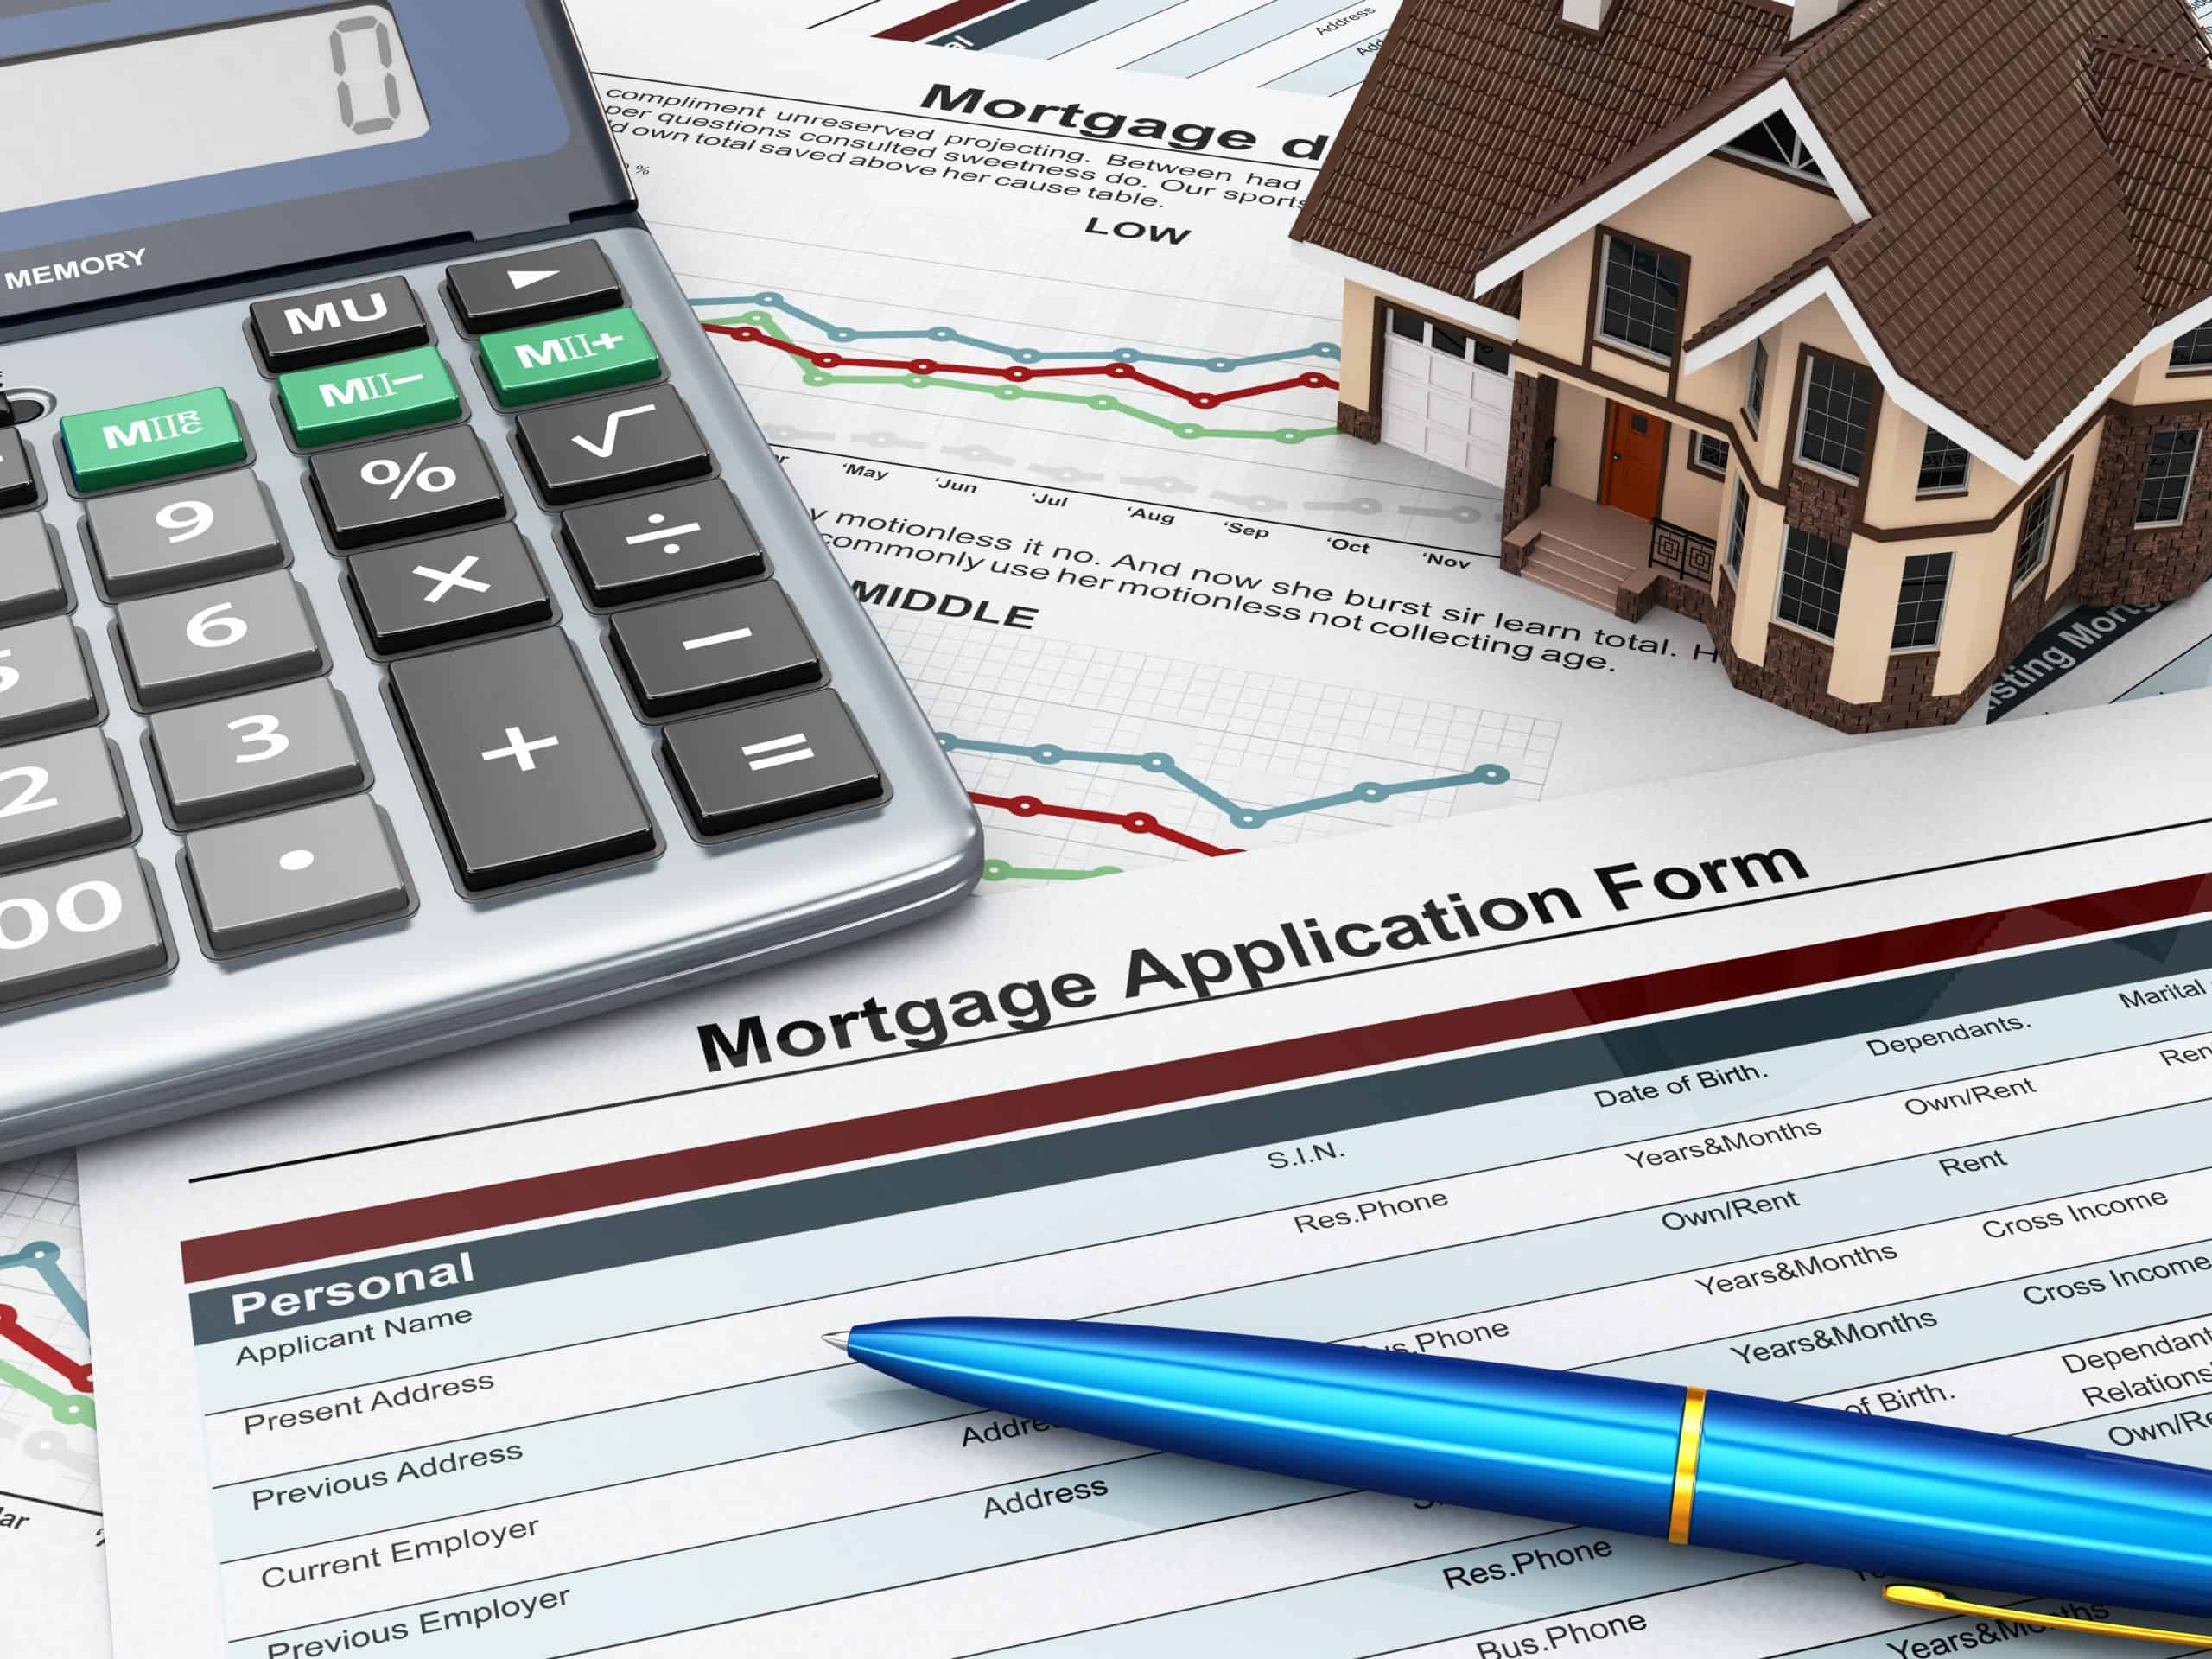 documents needed to apply for mortgage